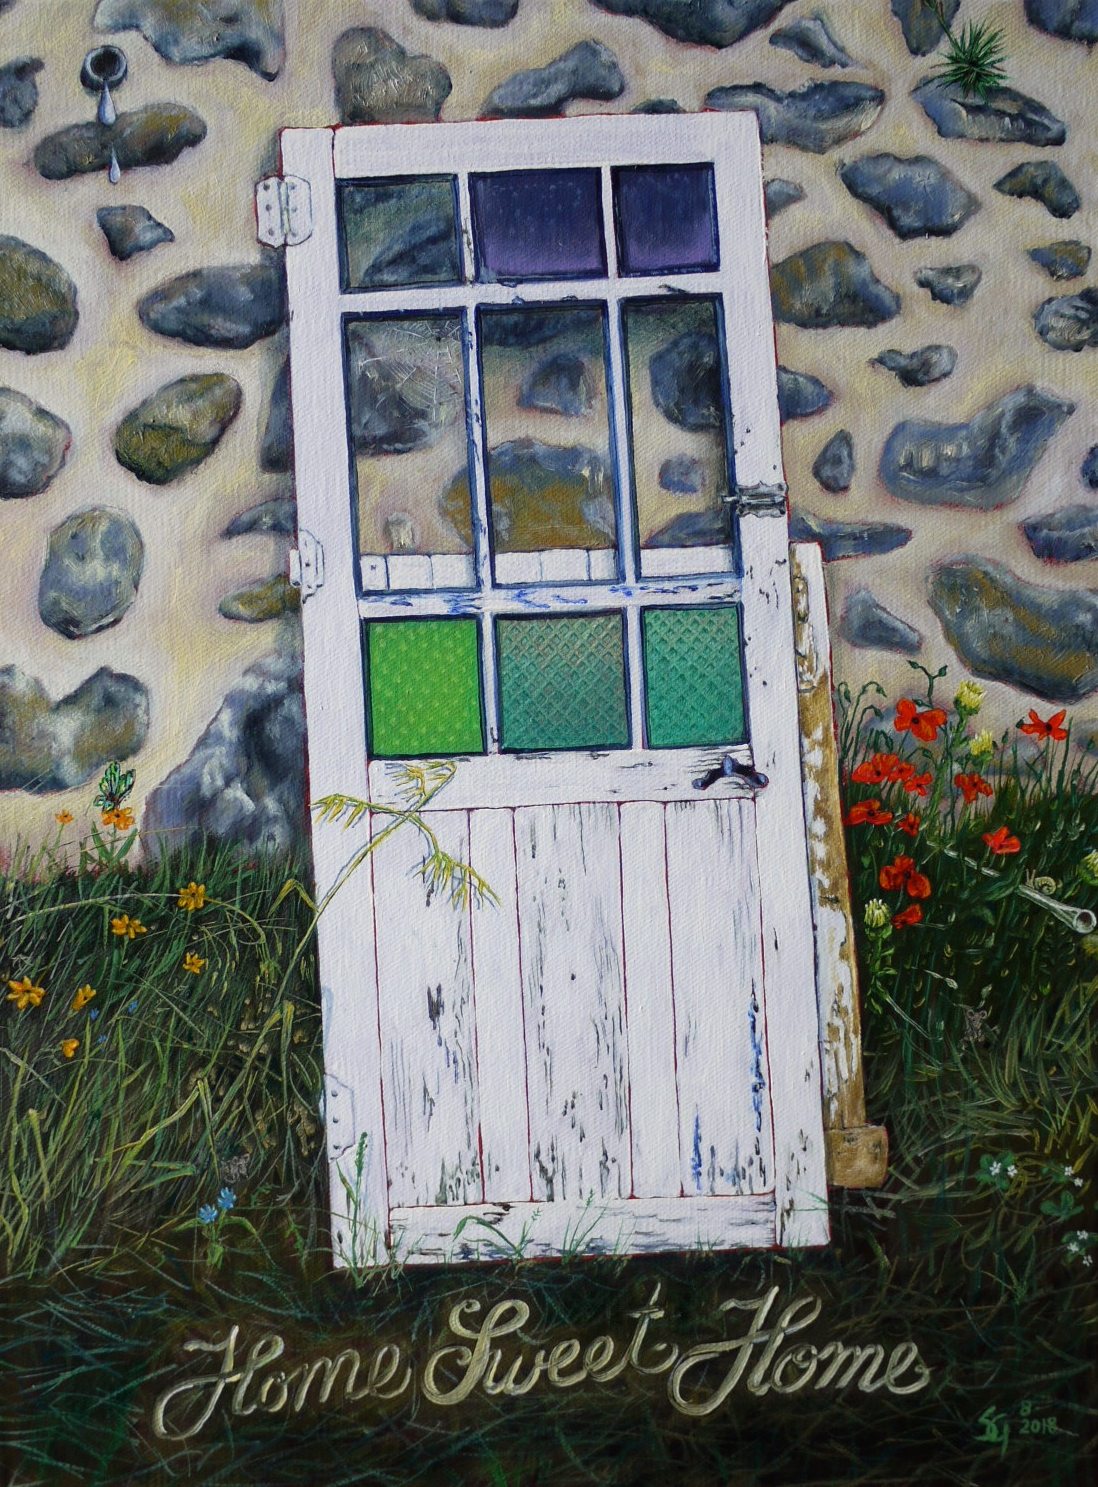 """#476 - """"Home Sweet Home"""" (Doors of Europe Series V) oil on canvas 12x16, 9/18 (3-4)"""